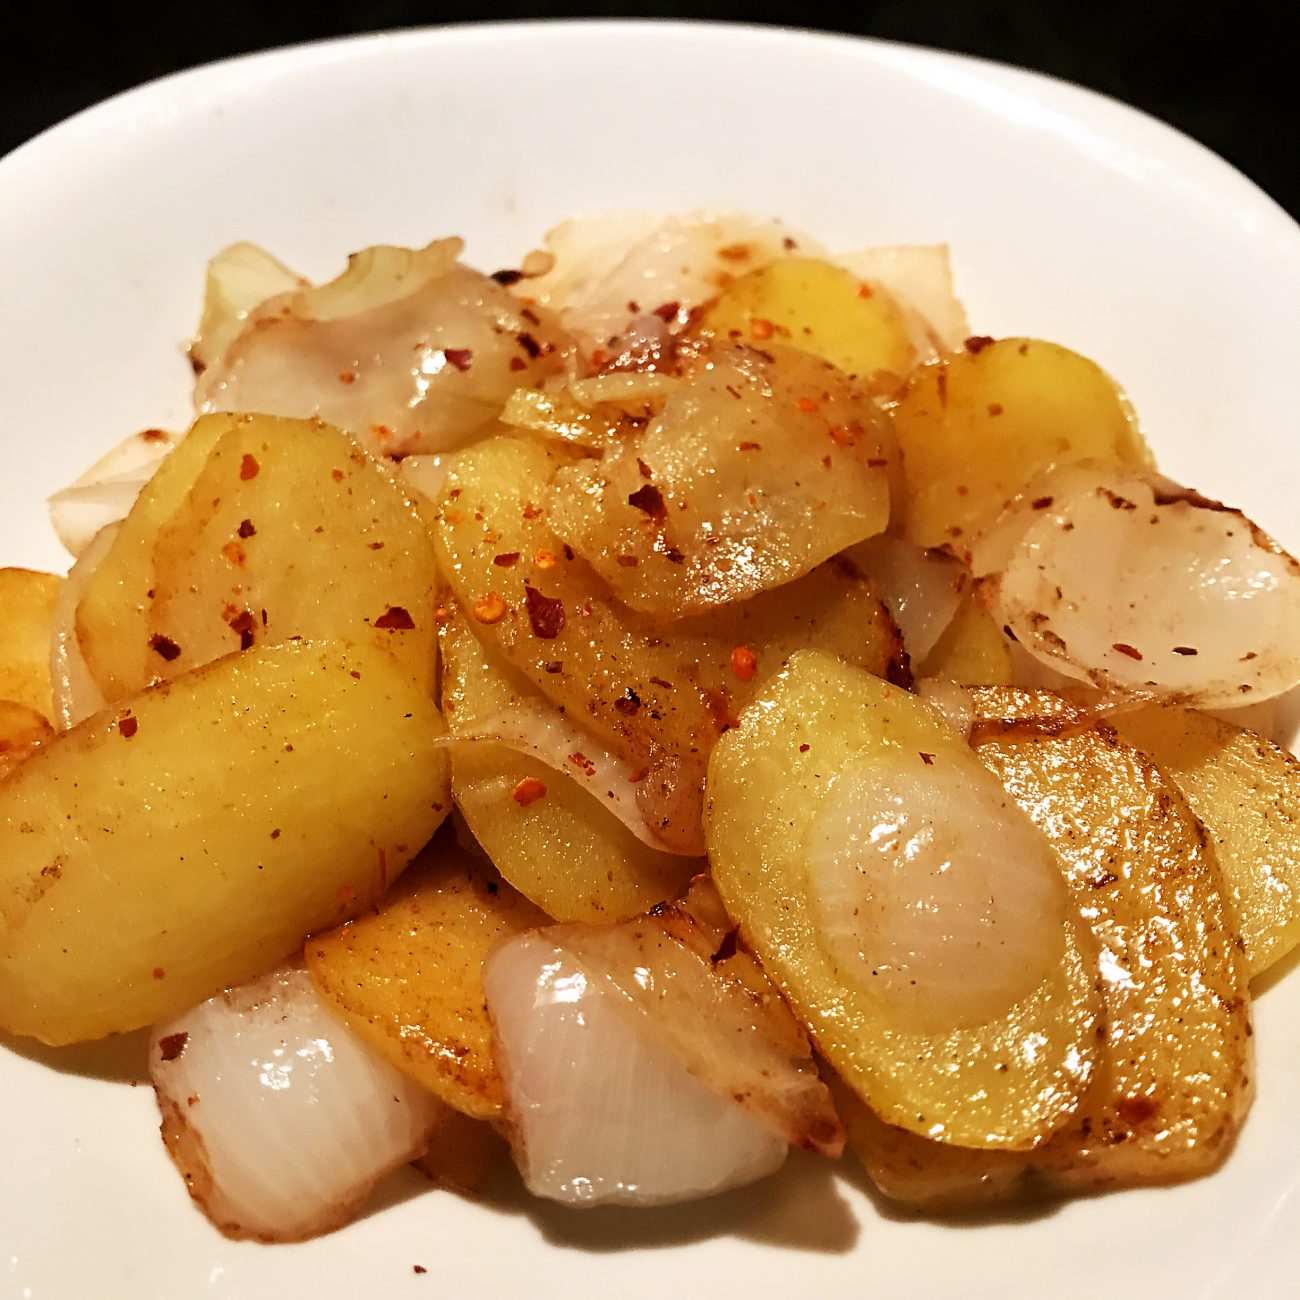 Cumin flavored Onions and Potatoes